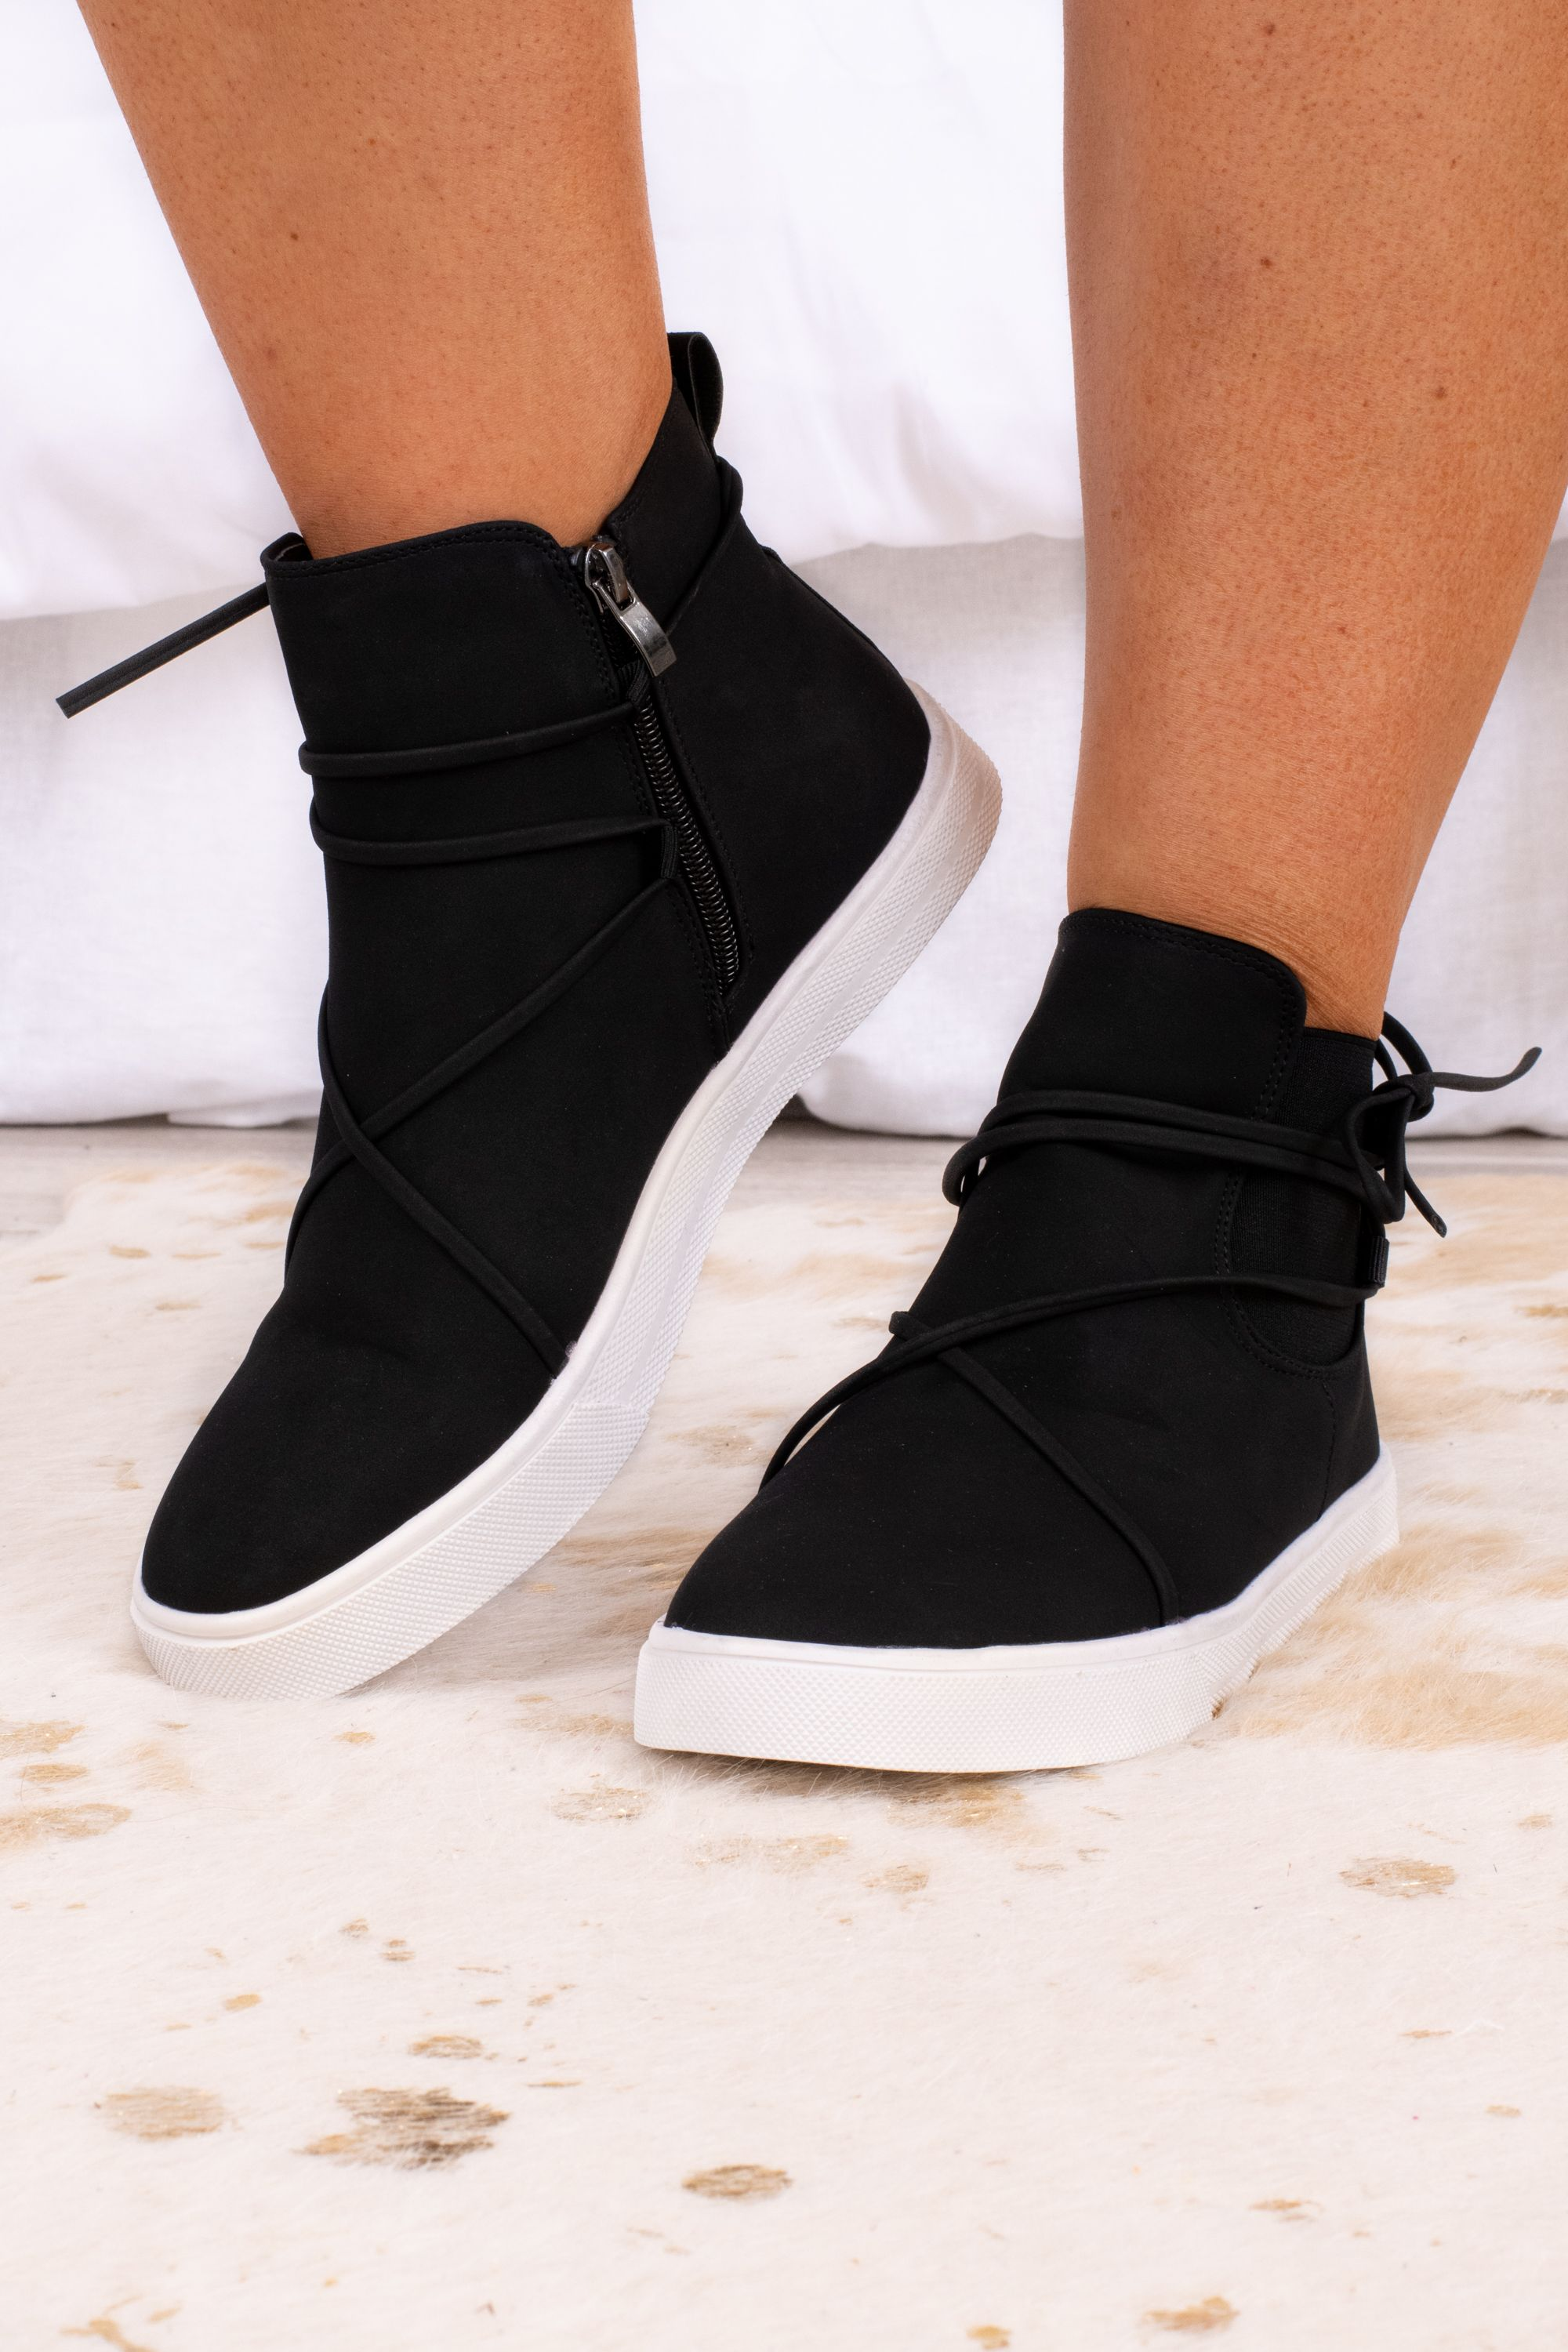 Chasing Pavements Sneakers Black Wedge Sneakers Outfit Sneakers Black Wedge Sneakers